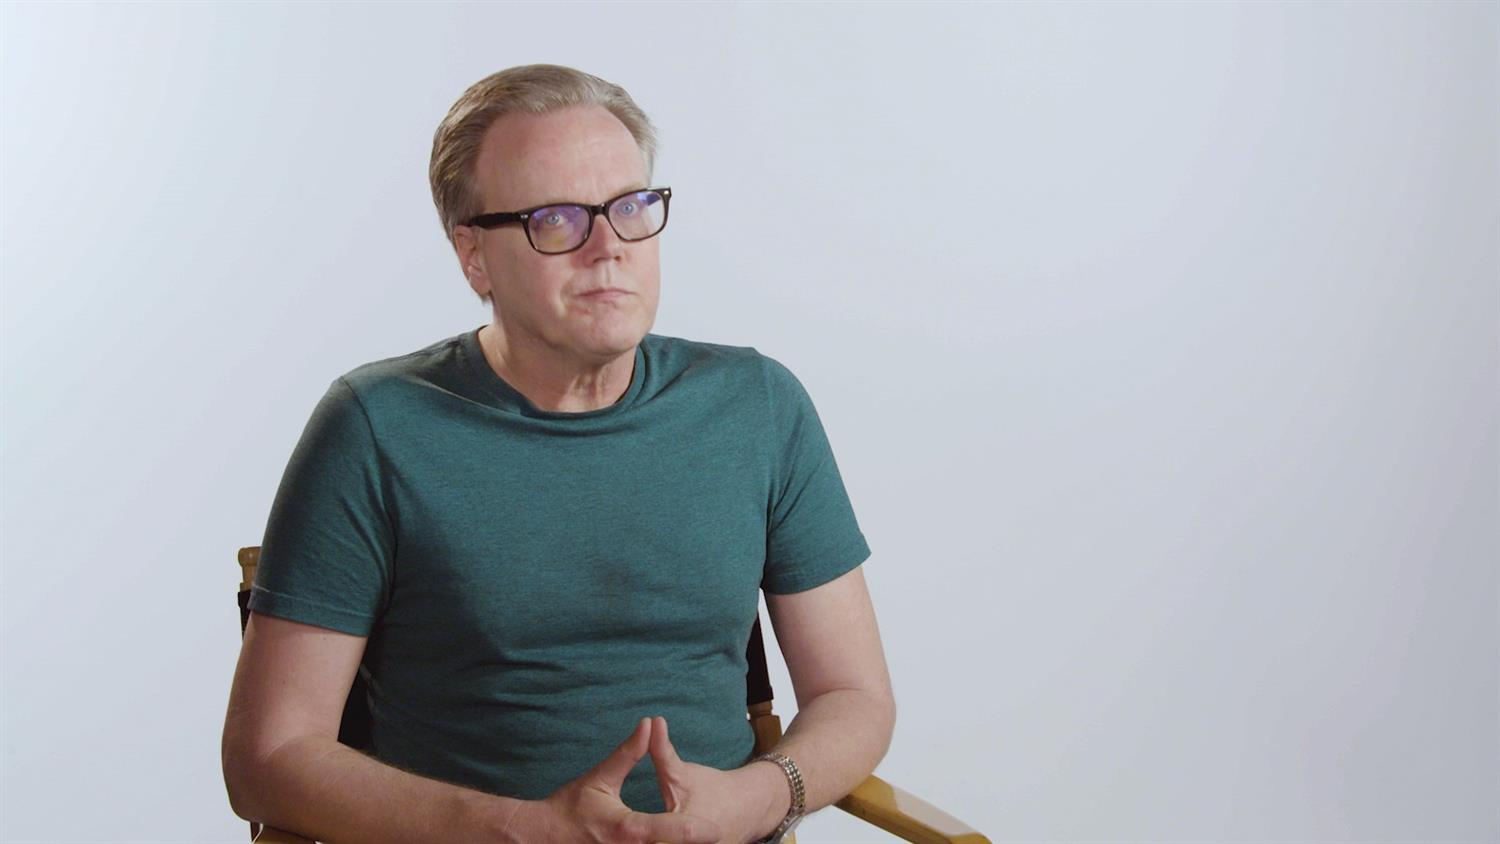 Batman: The Animated Series Co-Creator Bruce Timm on His Favorite Episodes